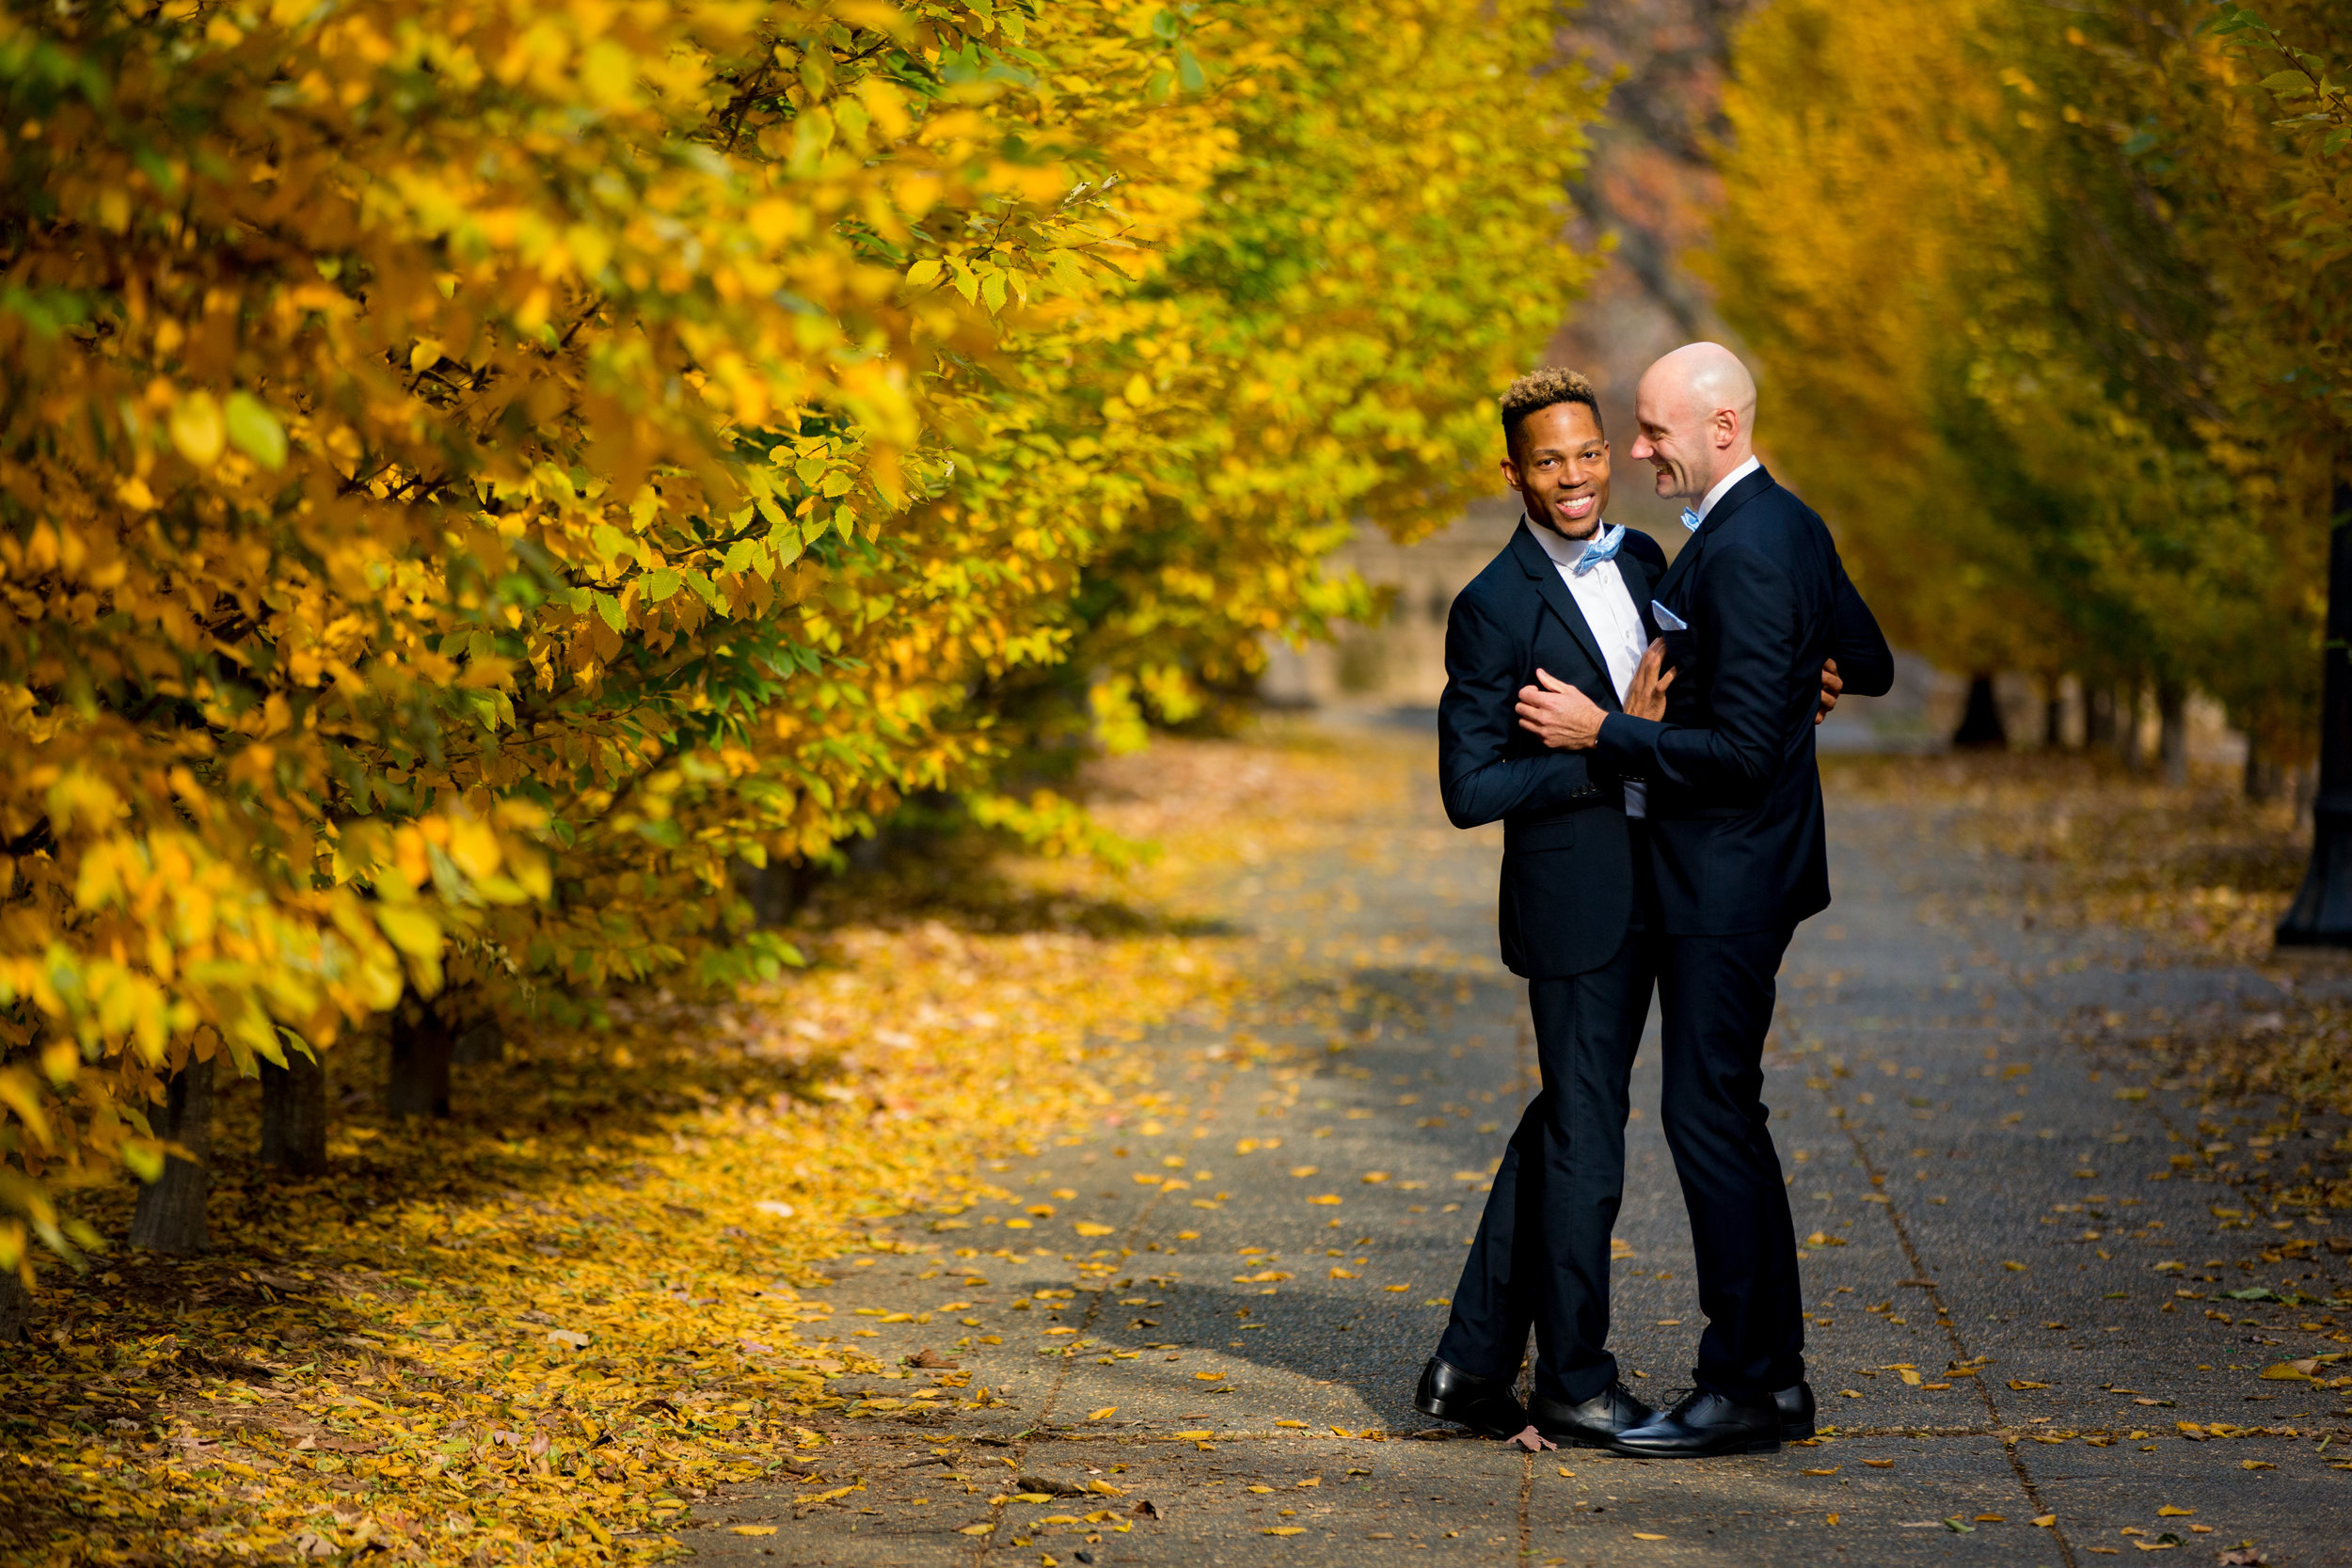 Adam+Ryan Sweetheart Session-148.jpg